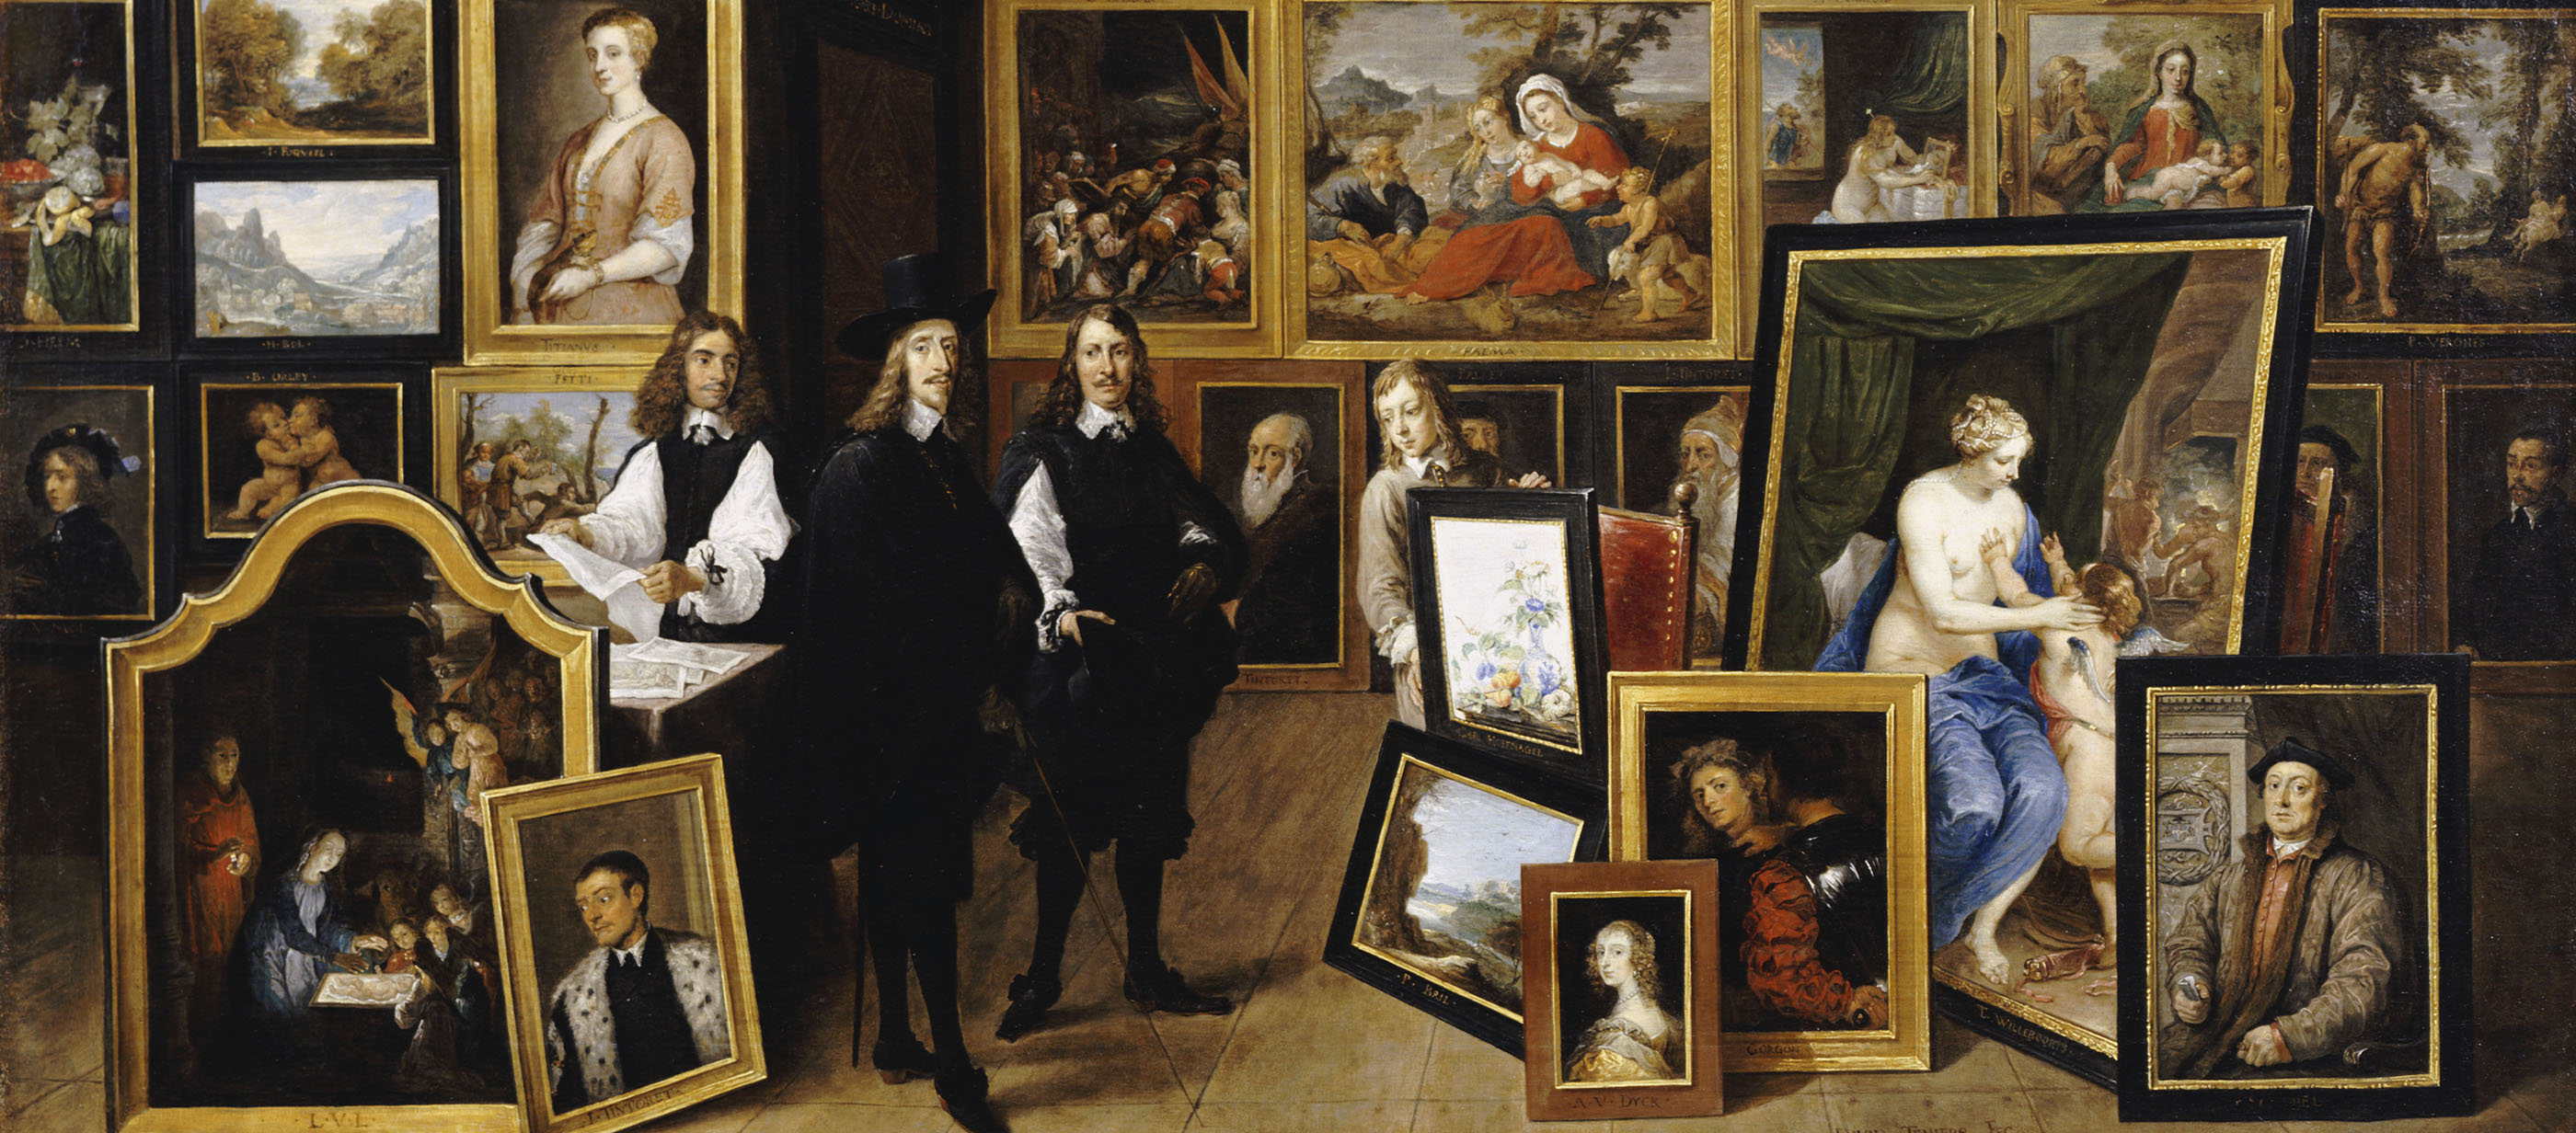 The Archduke Leopold Wilhelm in His Picture Gallery in Brussels, by David Teniers the Younger, 1653.